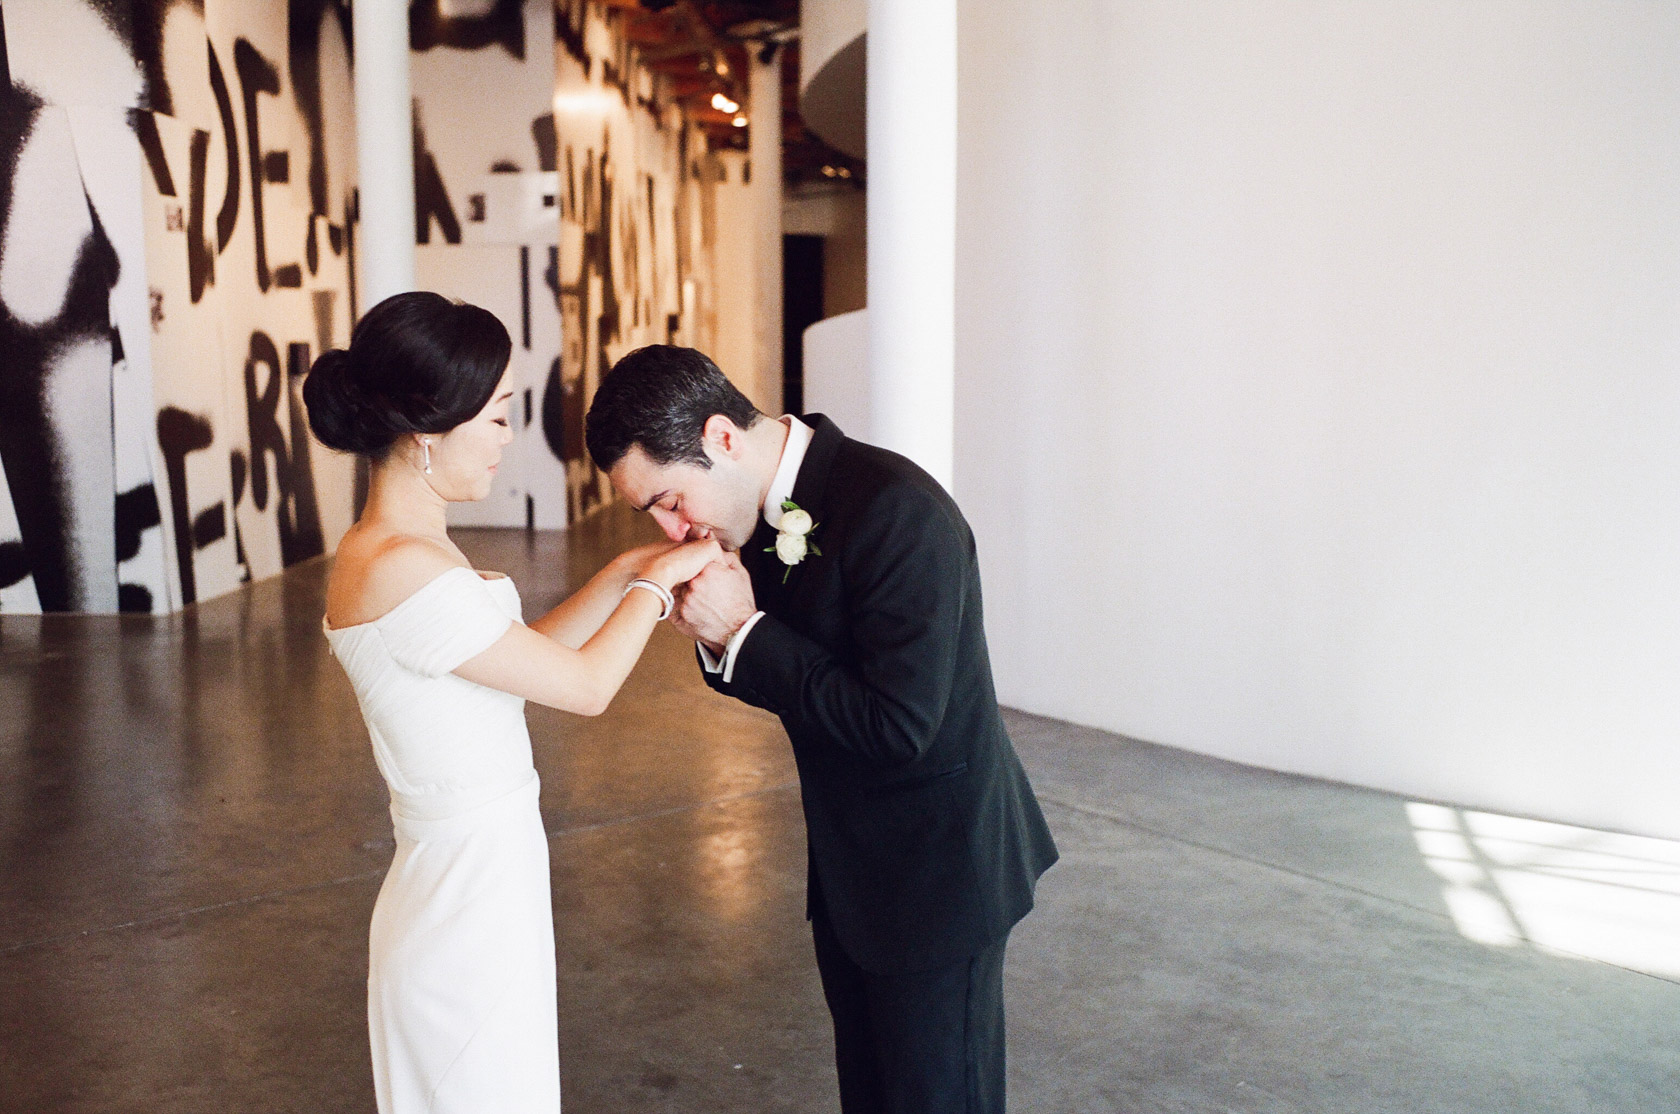 new orleans wedding first look on film at cac - 02